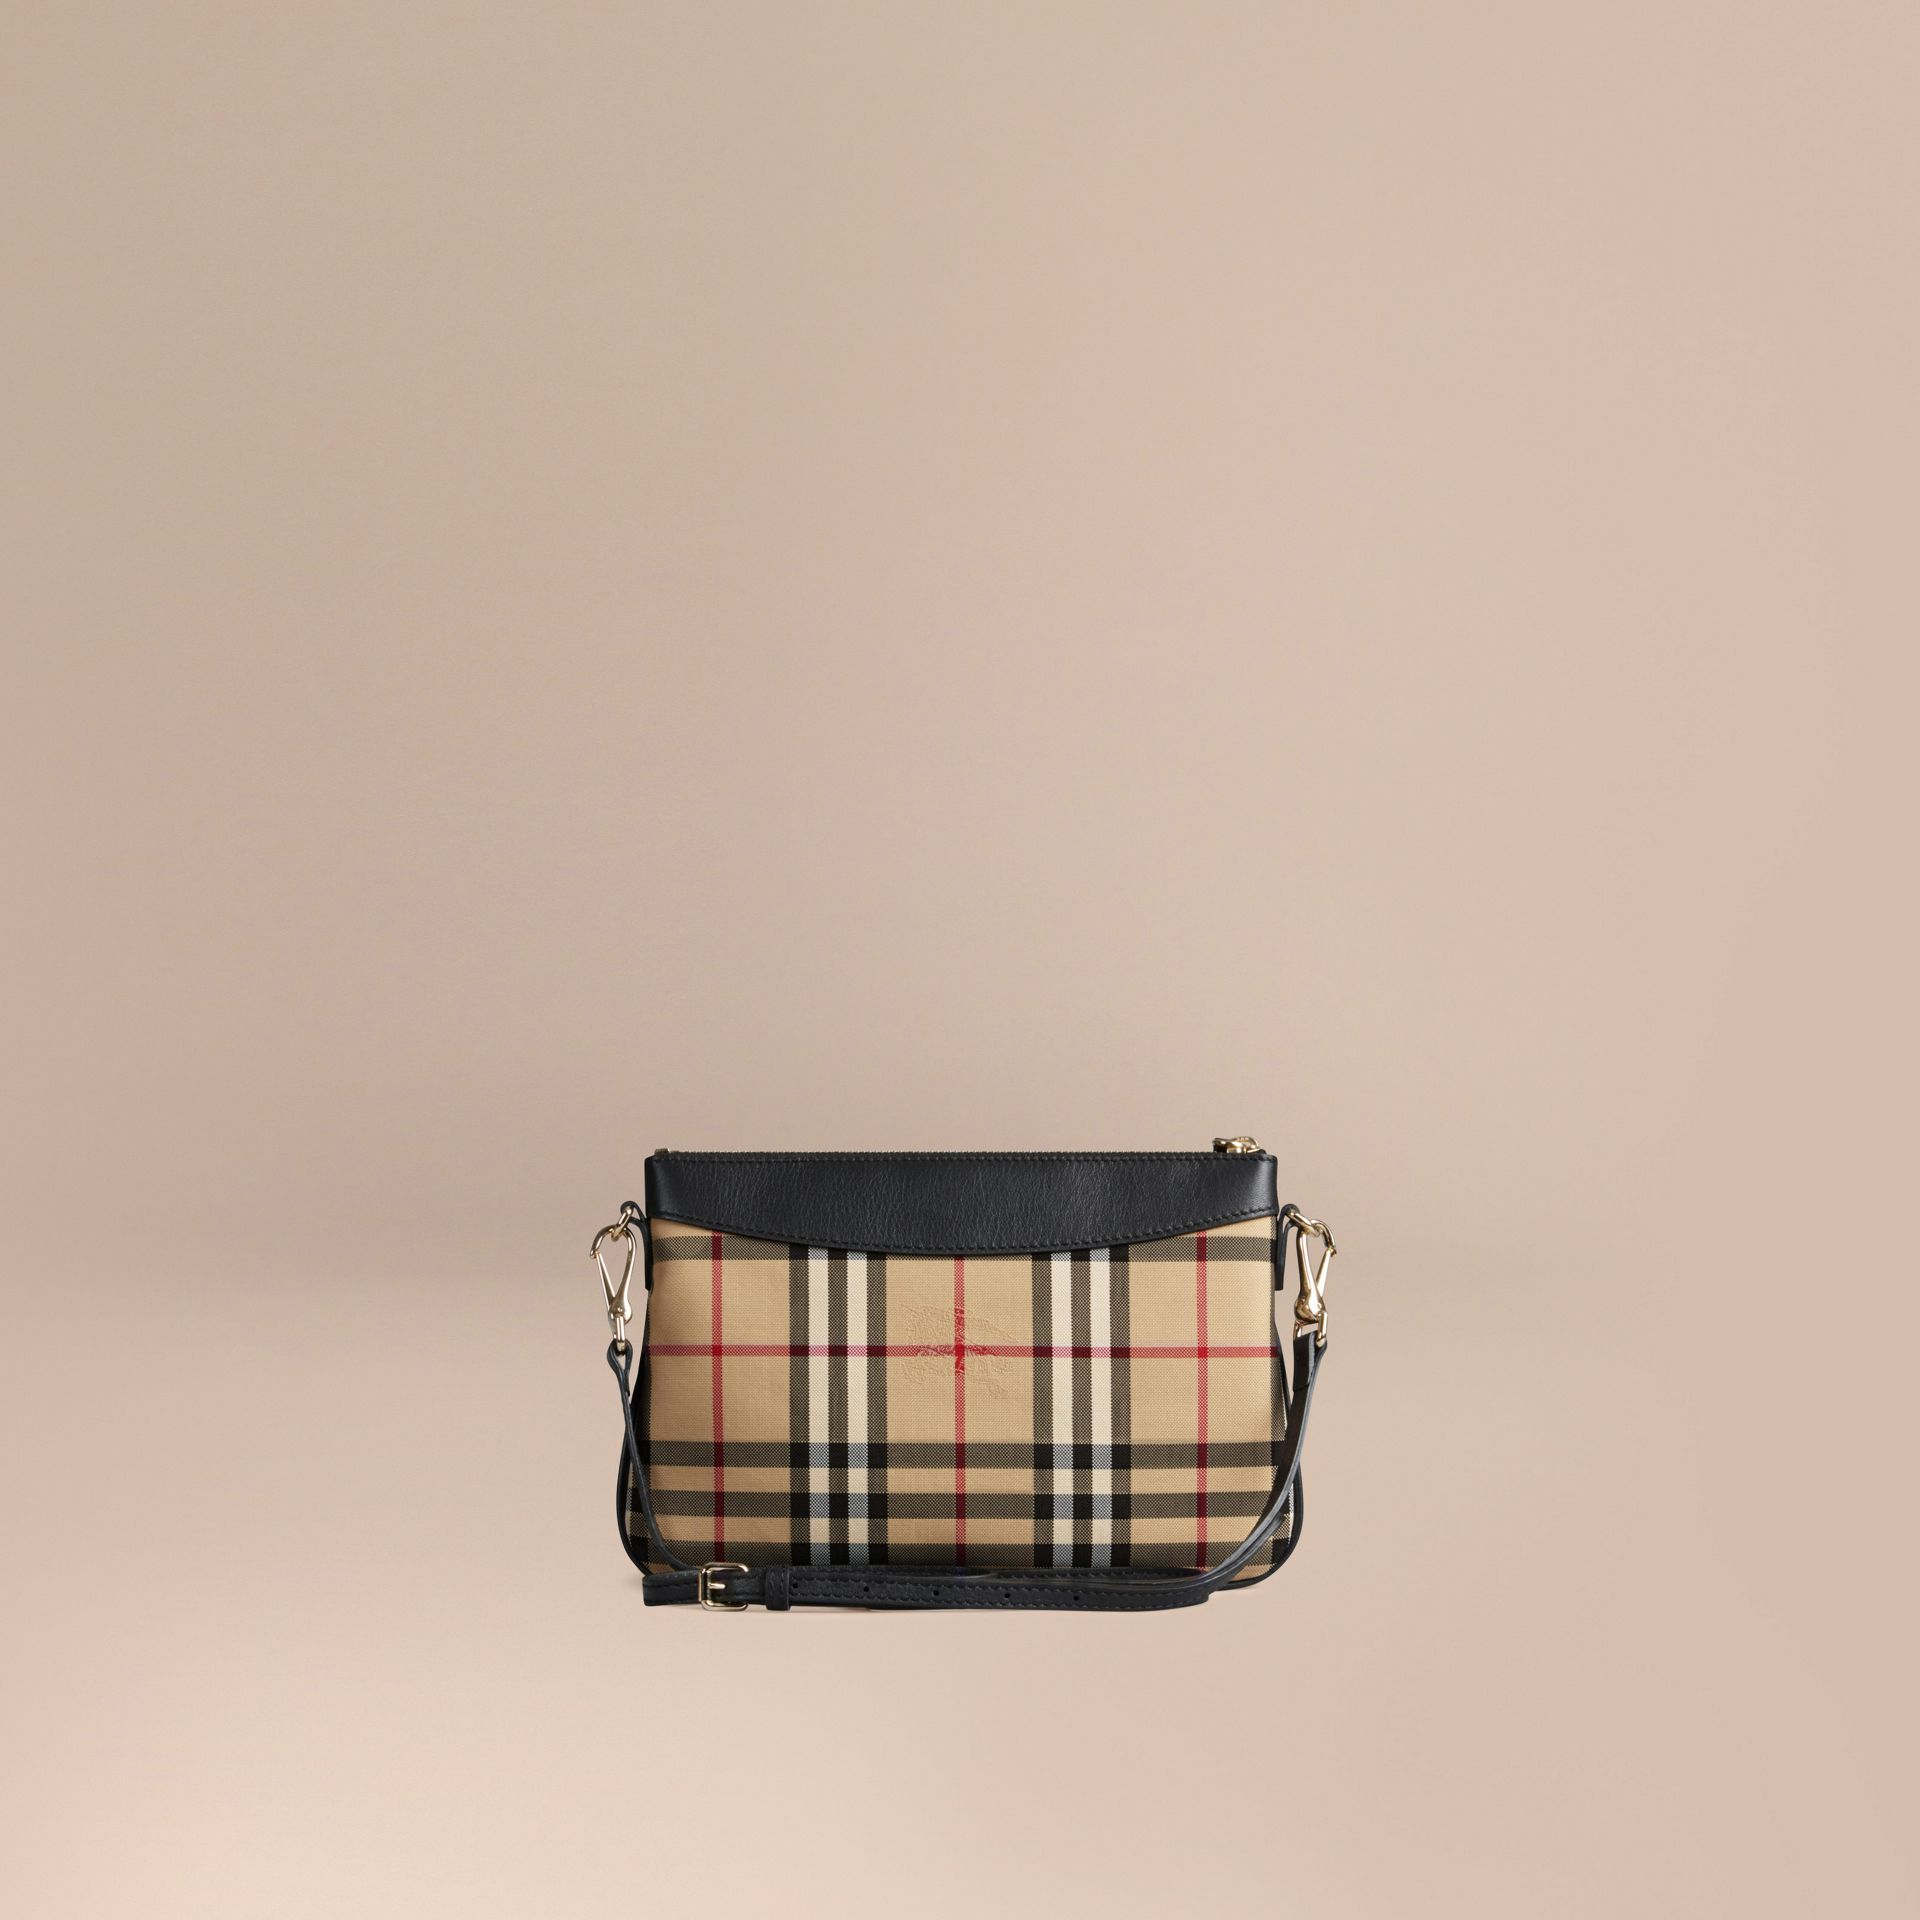 Horseferry Check and Leather Clutch Bag Black - gallery image 4